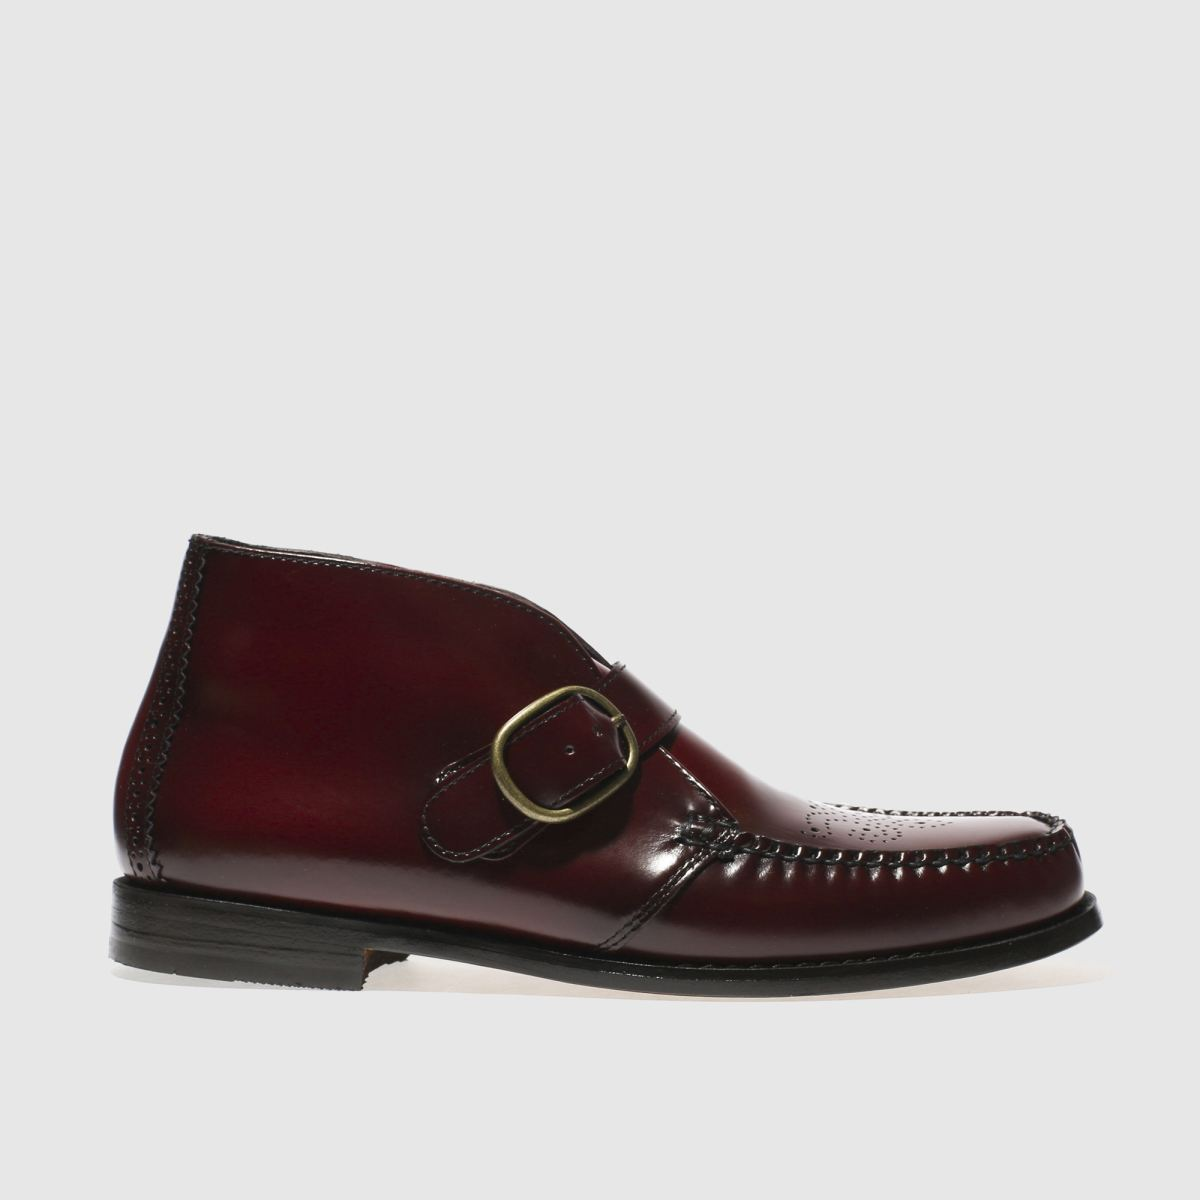 bass burgundy langly mid boots